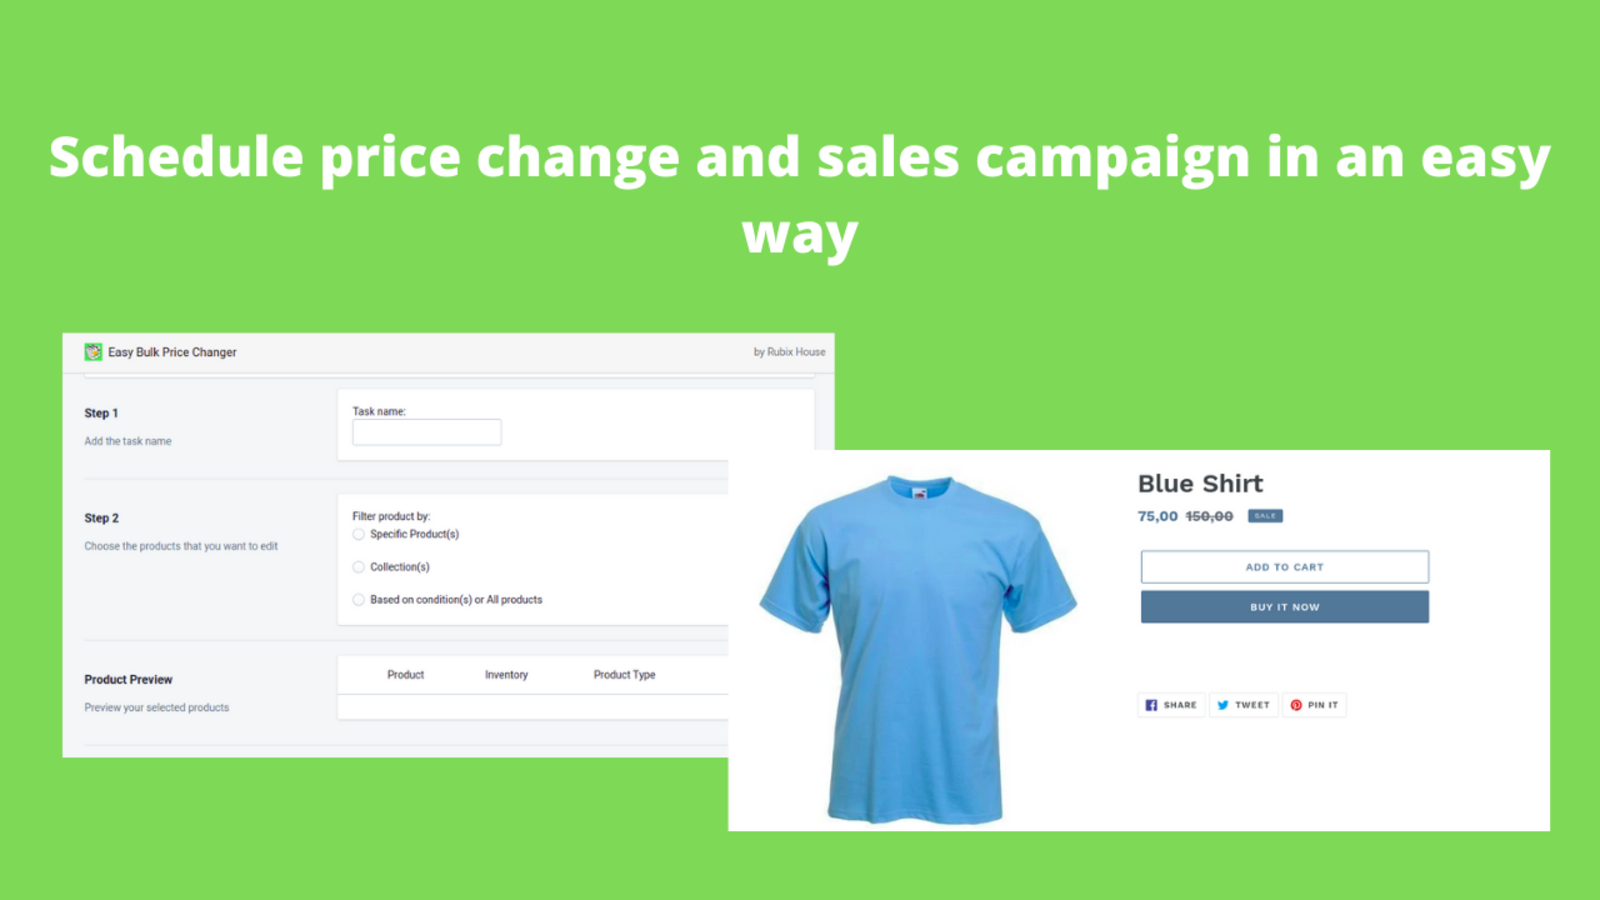 schedule price change and sales campaign in an easy way